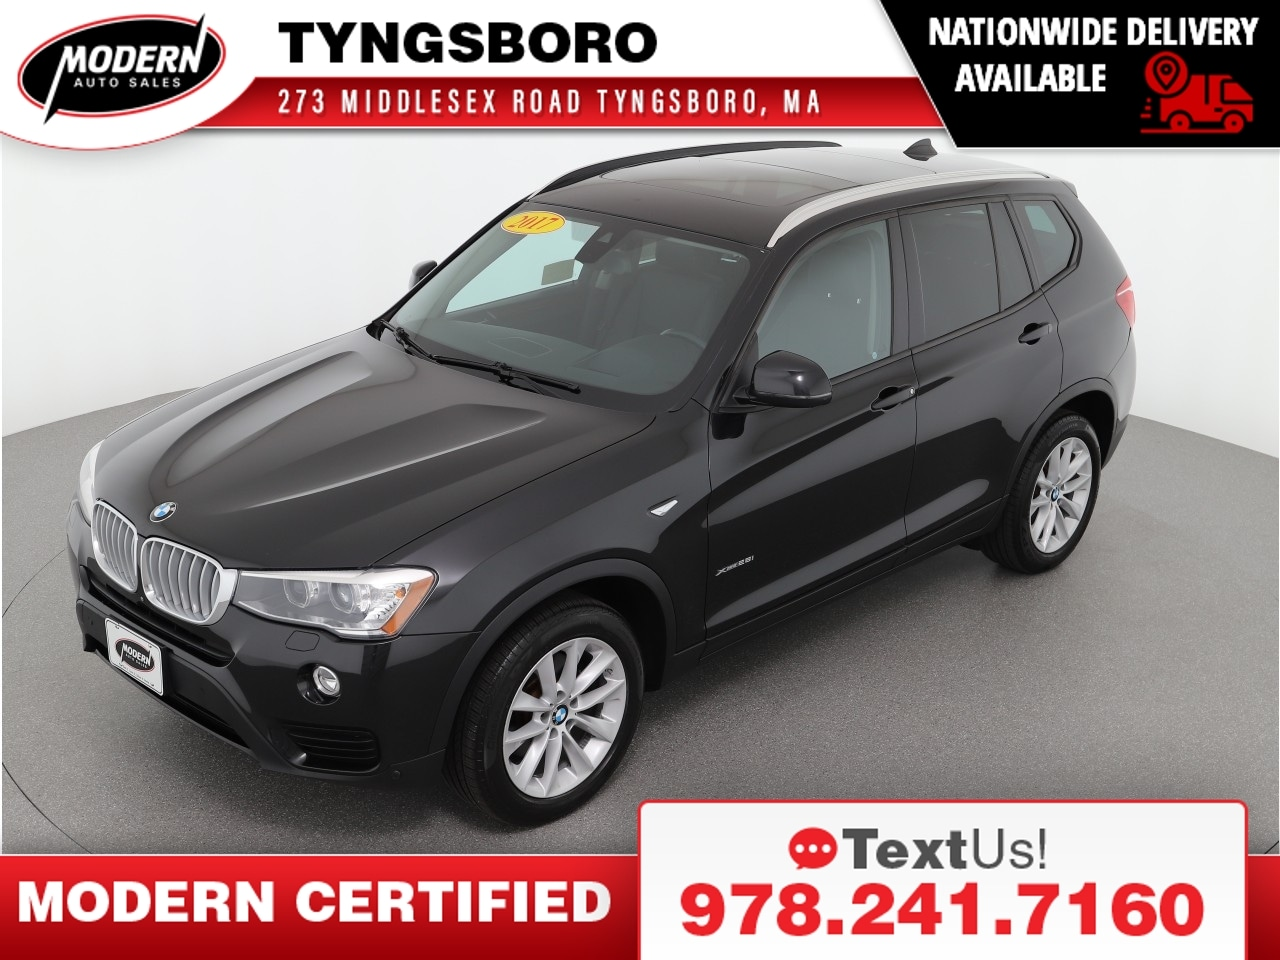 Used Bmw X3 Tyngsborough Ma